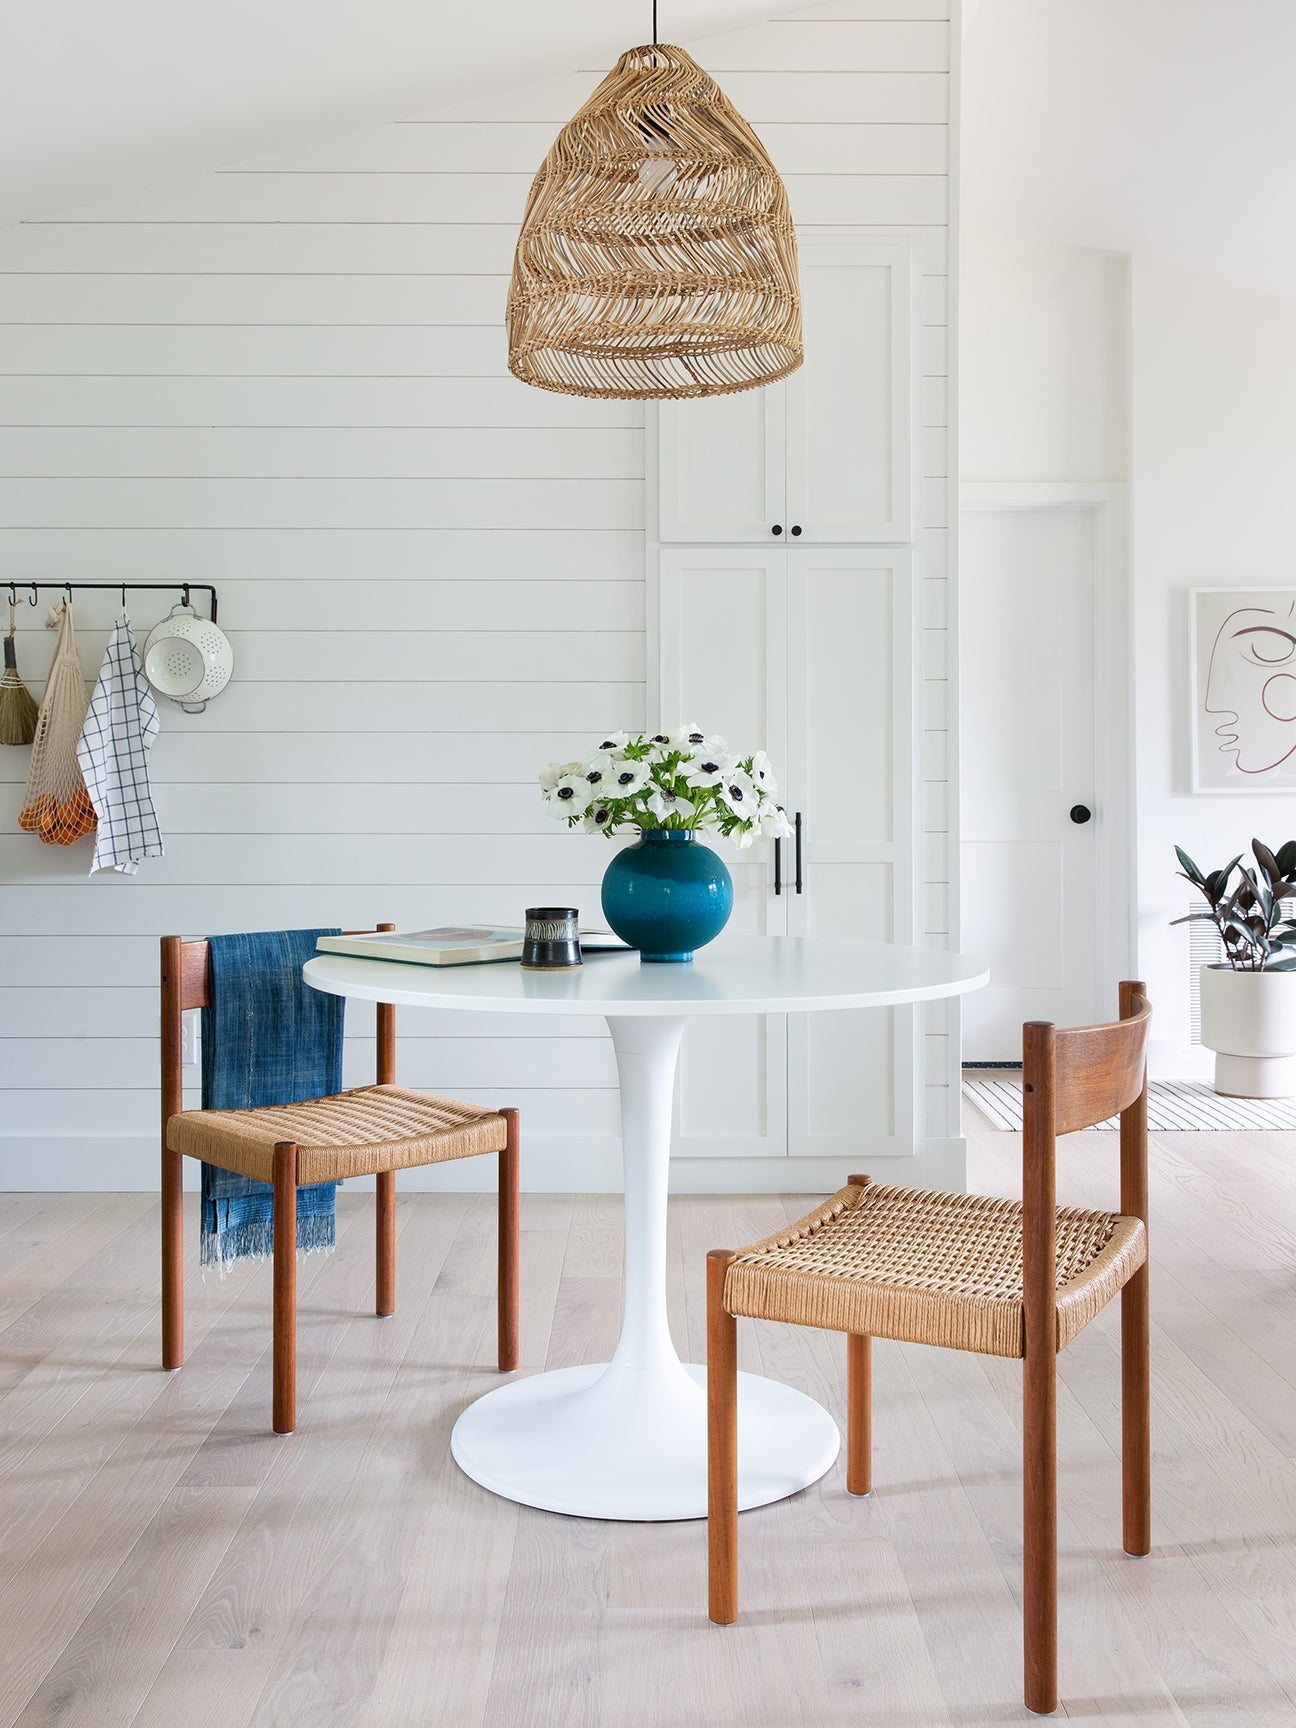 White circle dining table with blue flower vase.